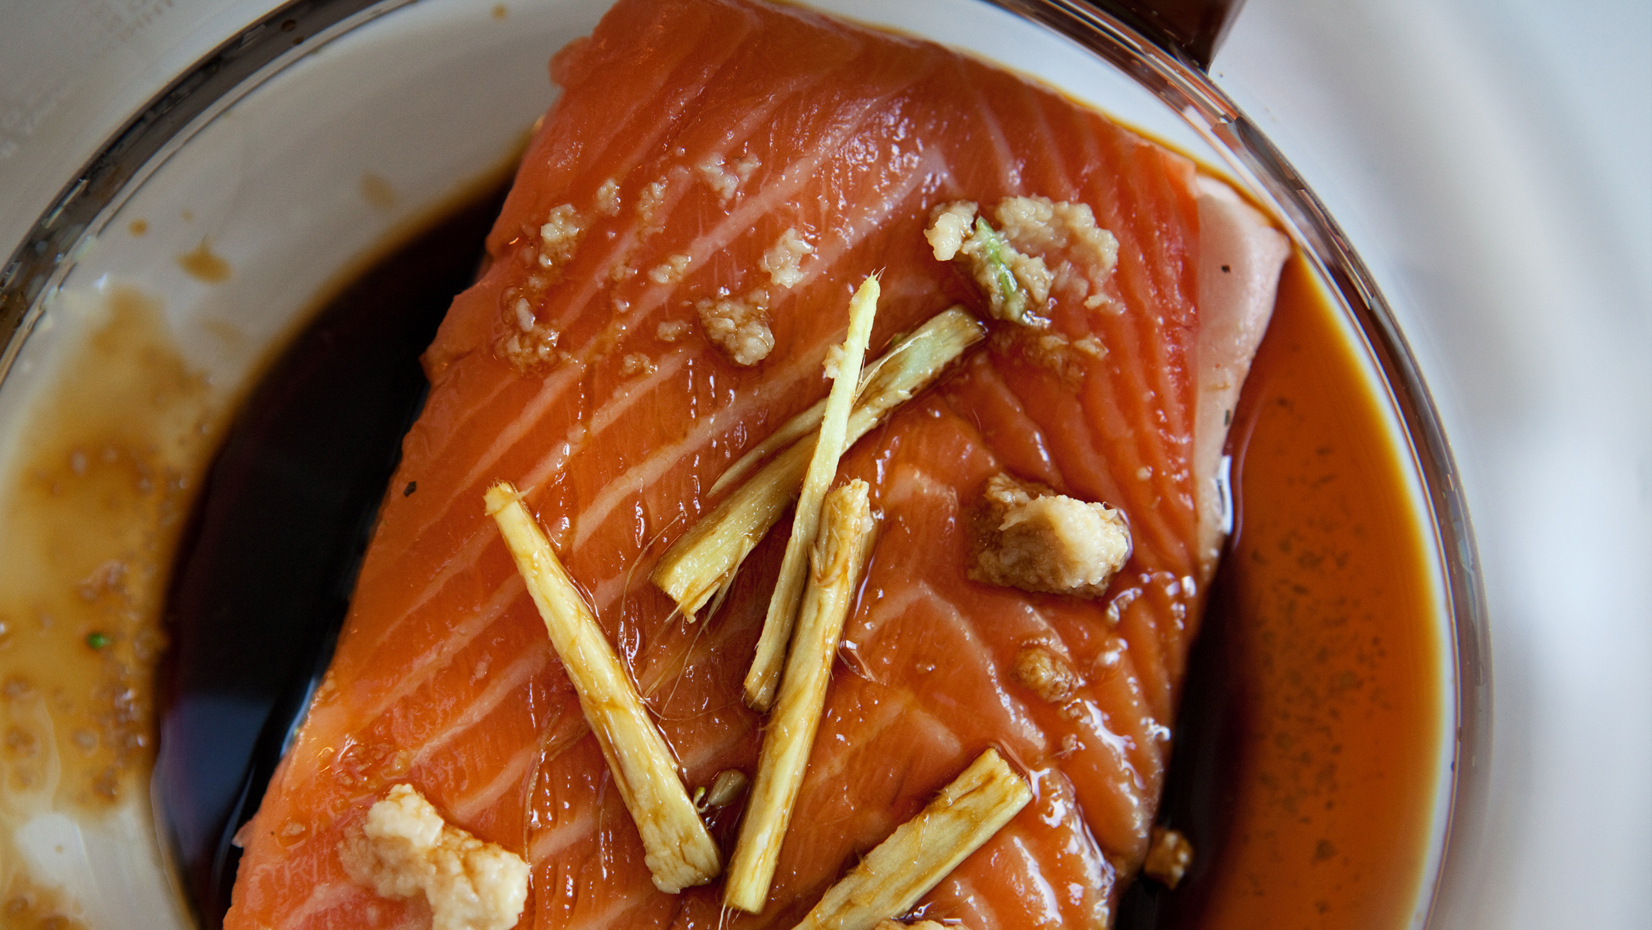 A slice of salmon with ginger, garlic and soy sauce sits in the coffee maker's carafe. Sliced broccoli and cauliflower are steamed in the basket while the salmon poaches below.